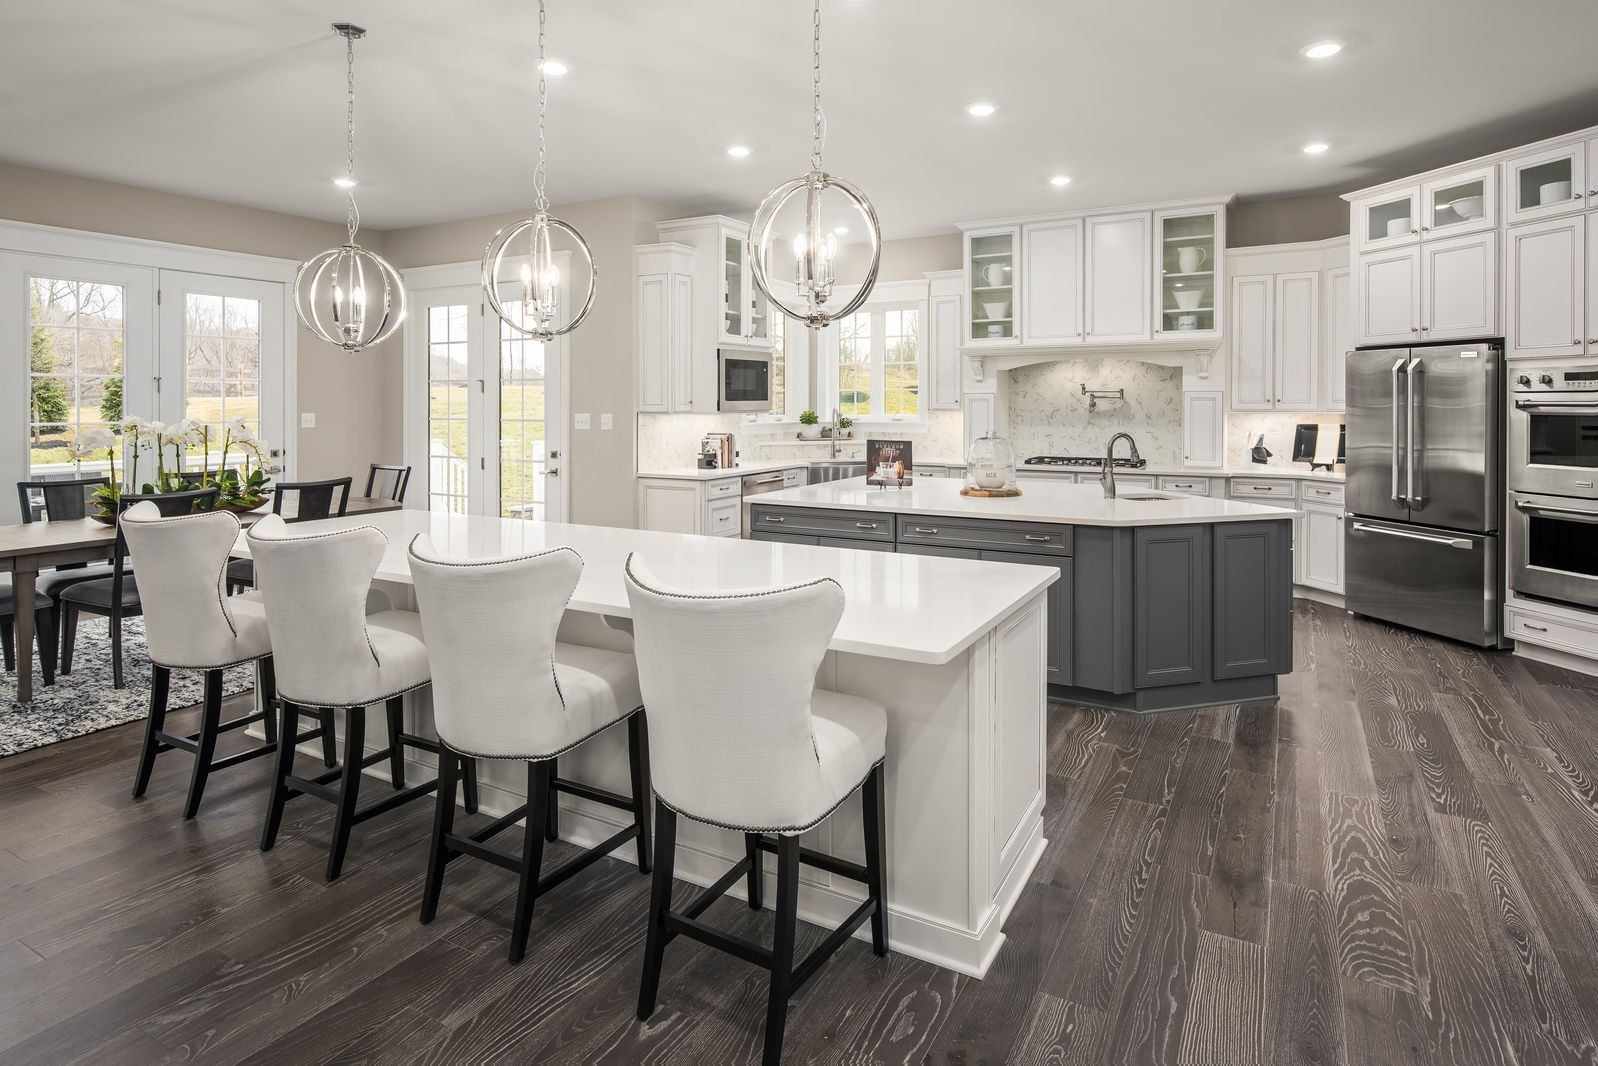 Kitchen featured in the Clifton Park II By NVHomes in Washington, VA